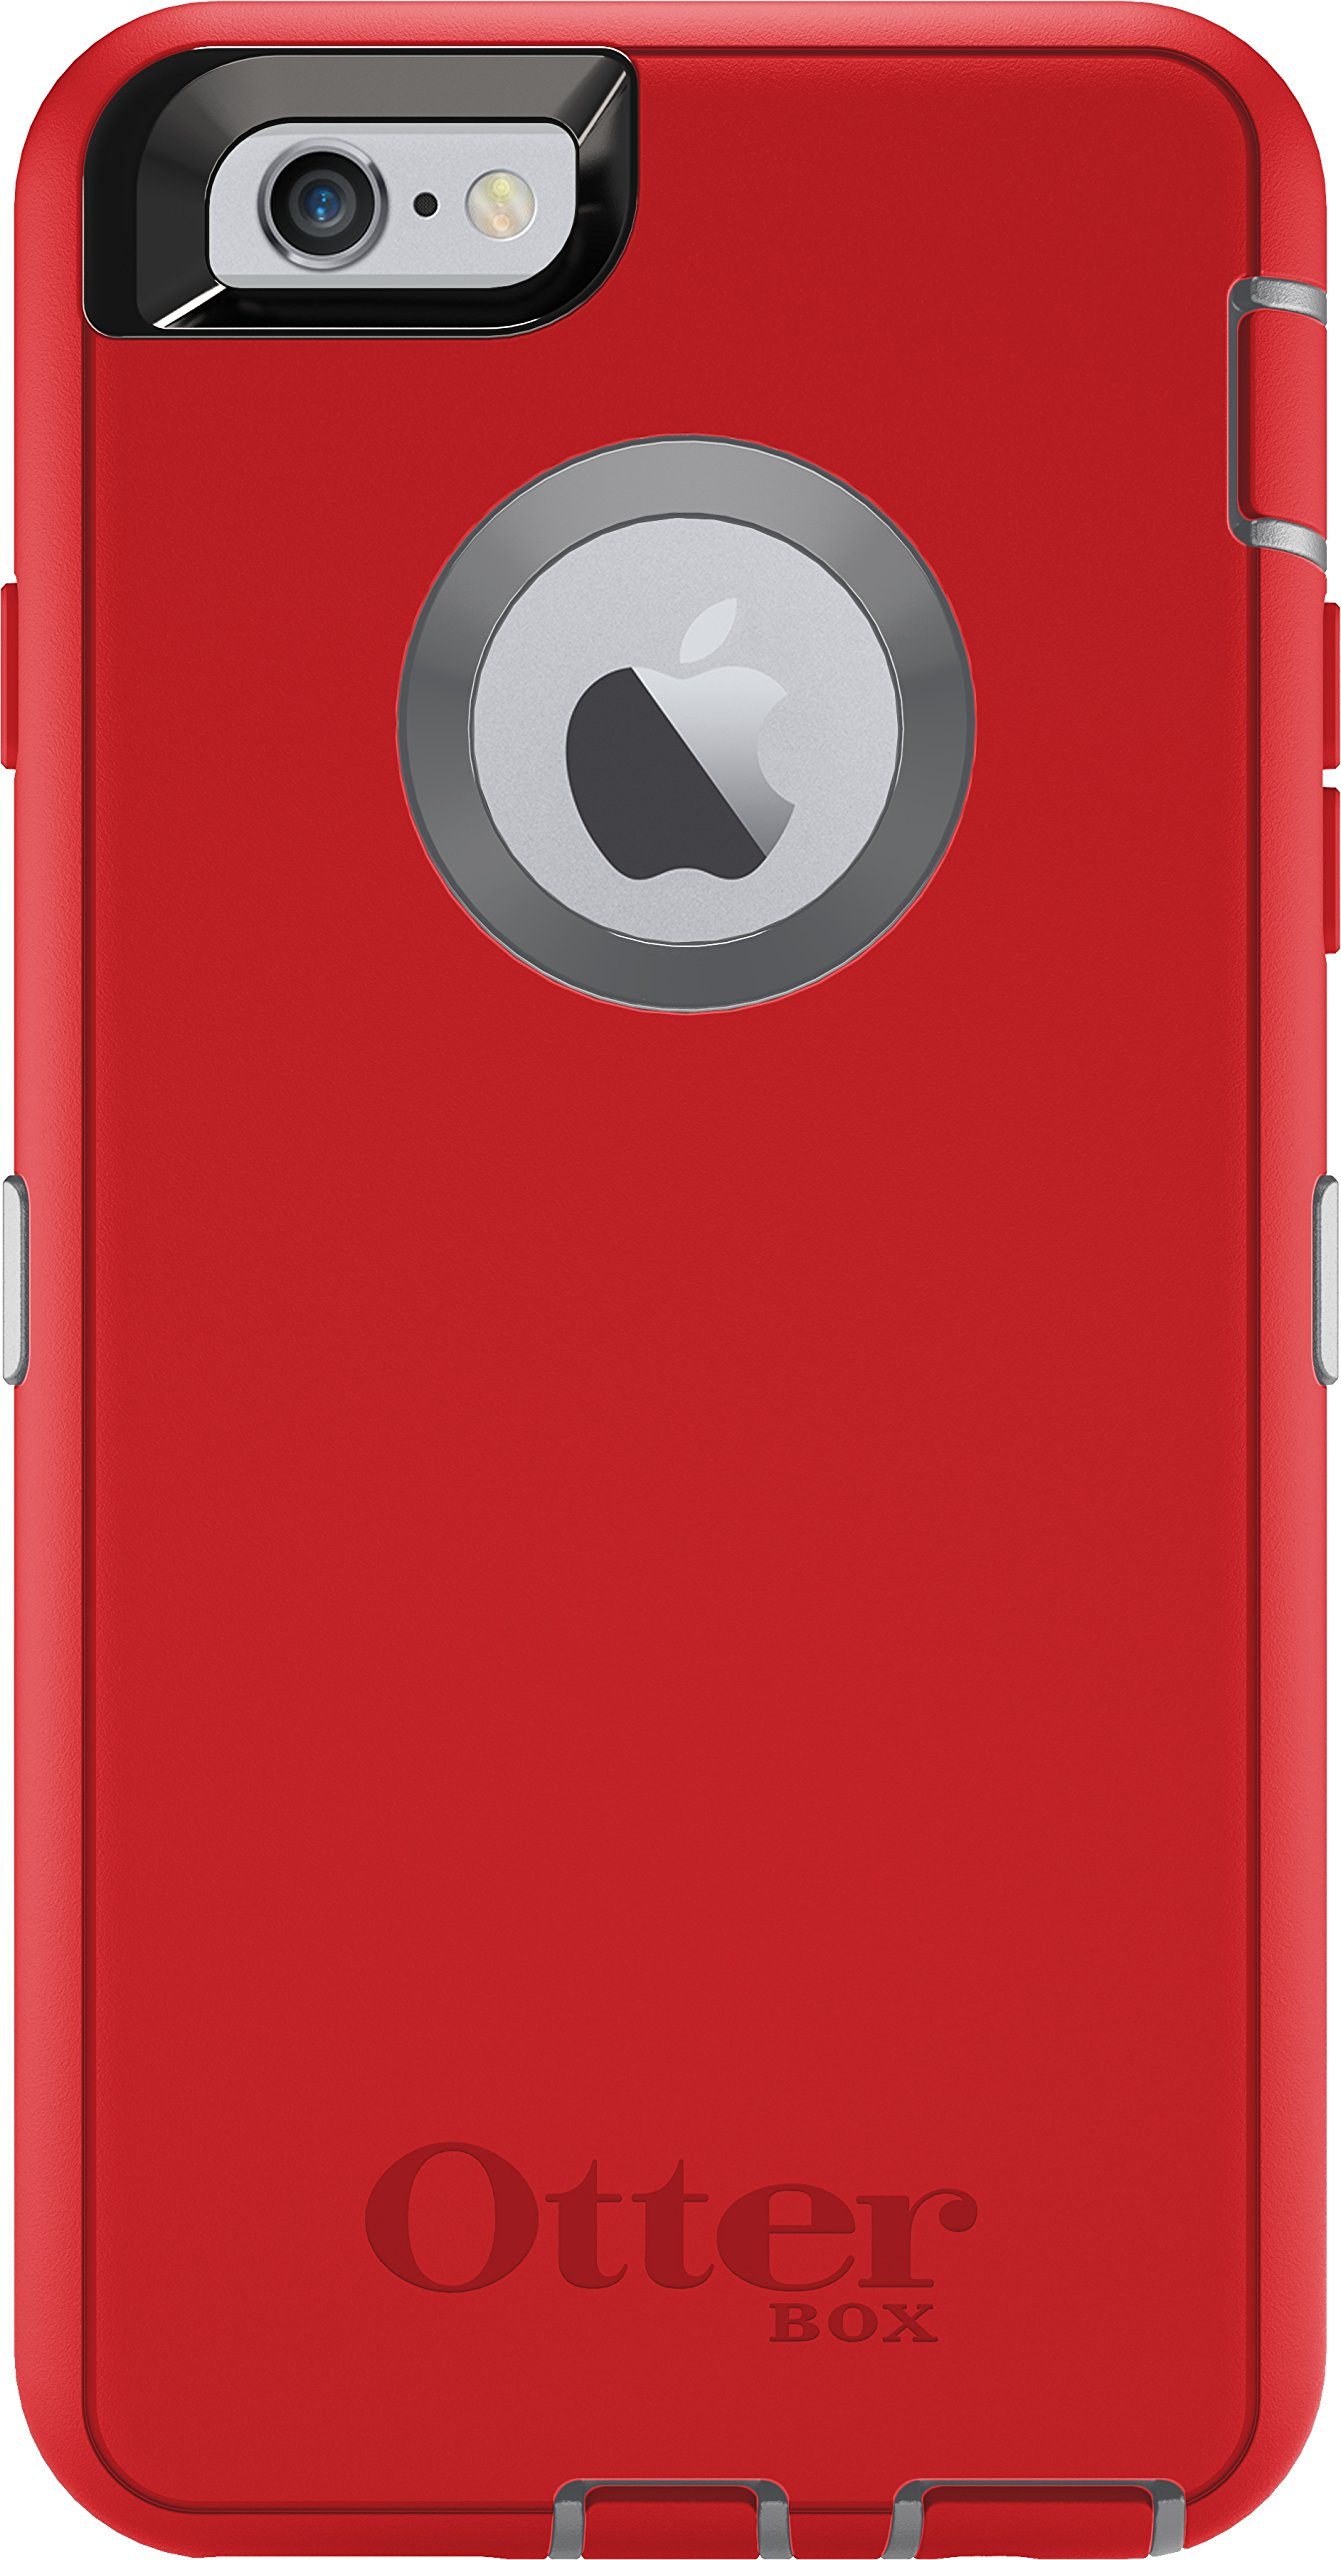 Buy Otterbox Commuter Iphone 6 6s Case Frustration Free Packaging Defender Series Plus Neon Rose Fire Within